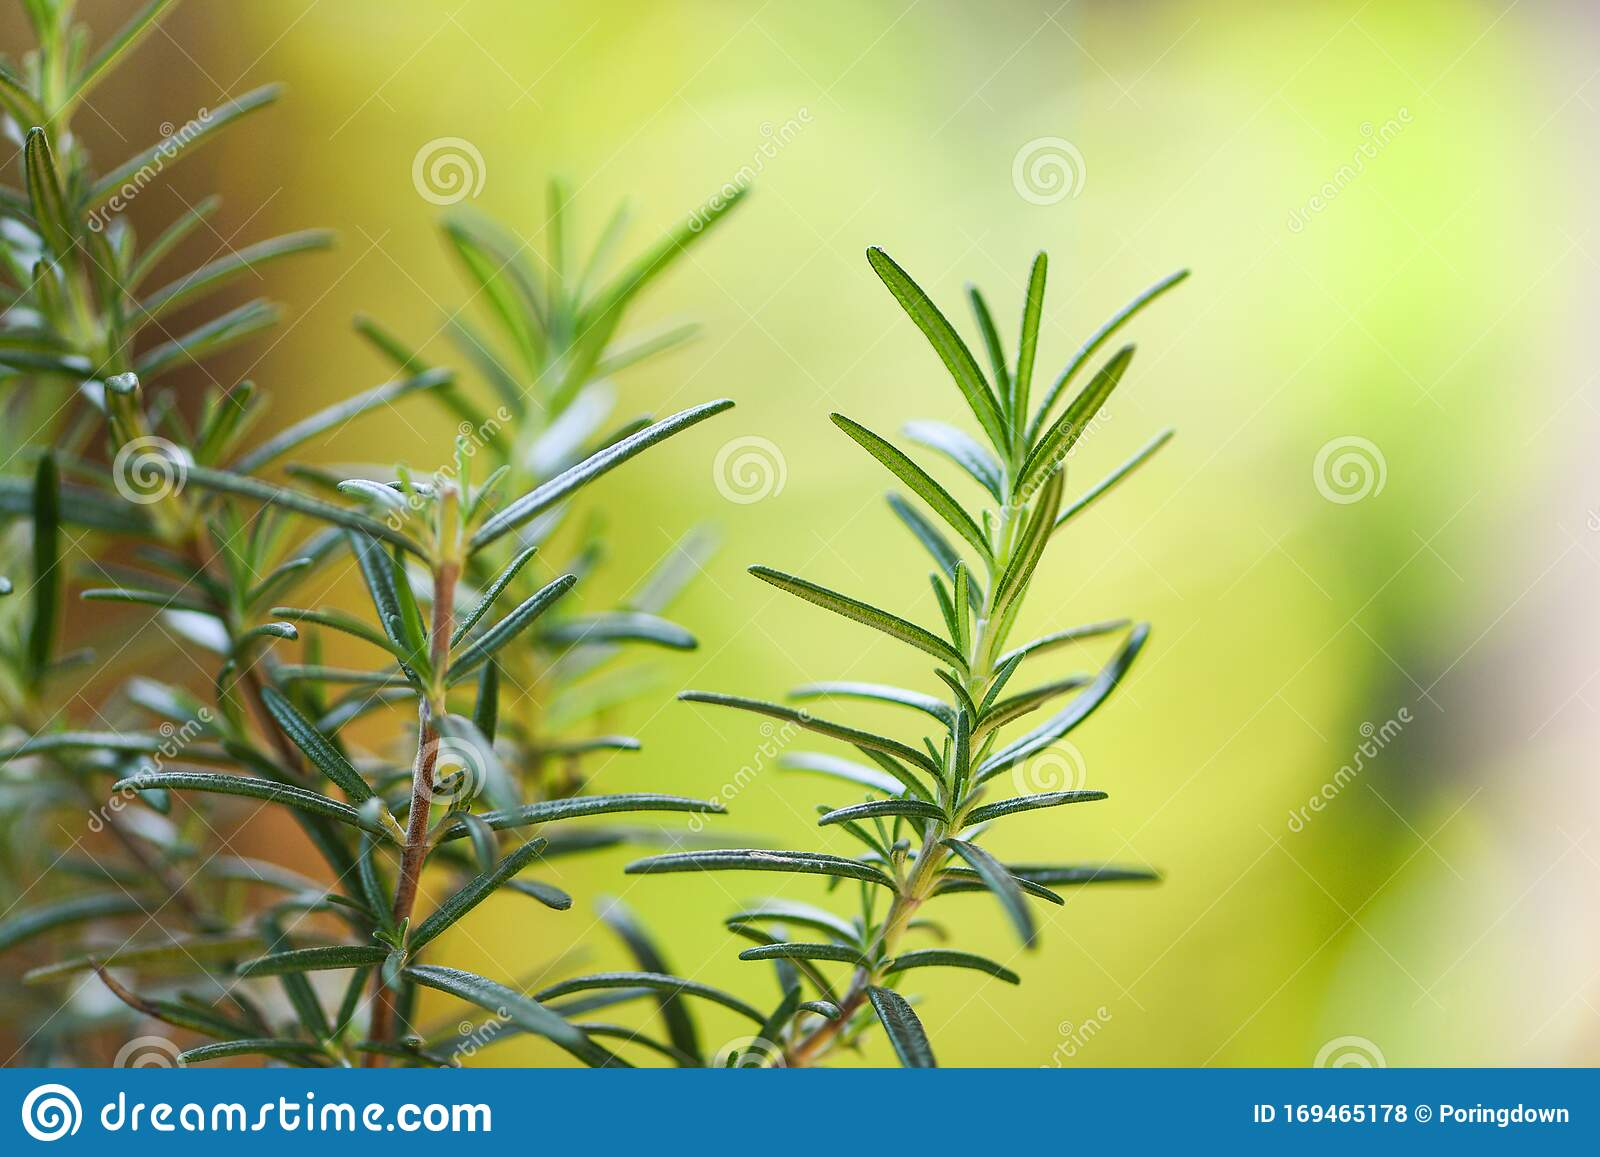 Organic Rosemary Plant Growing In The Garden For Extracts